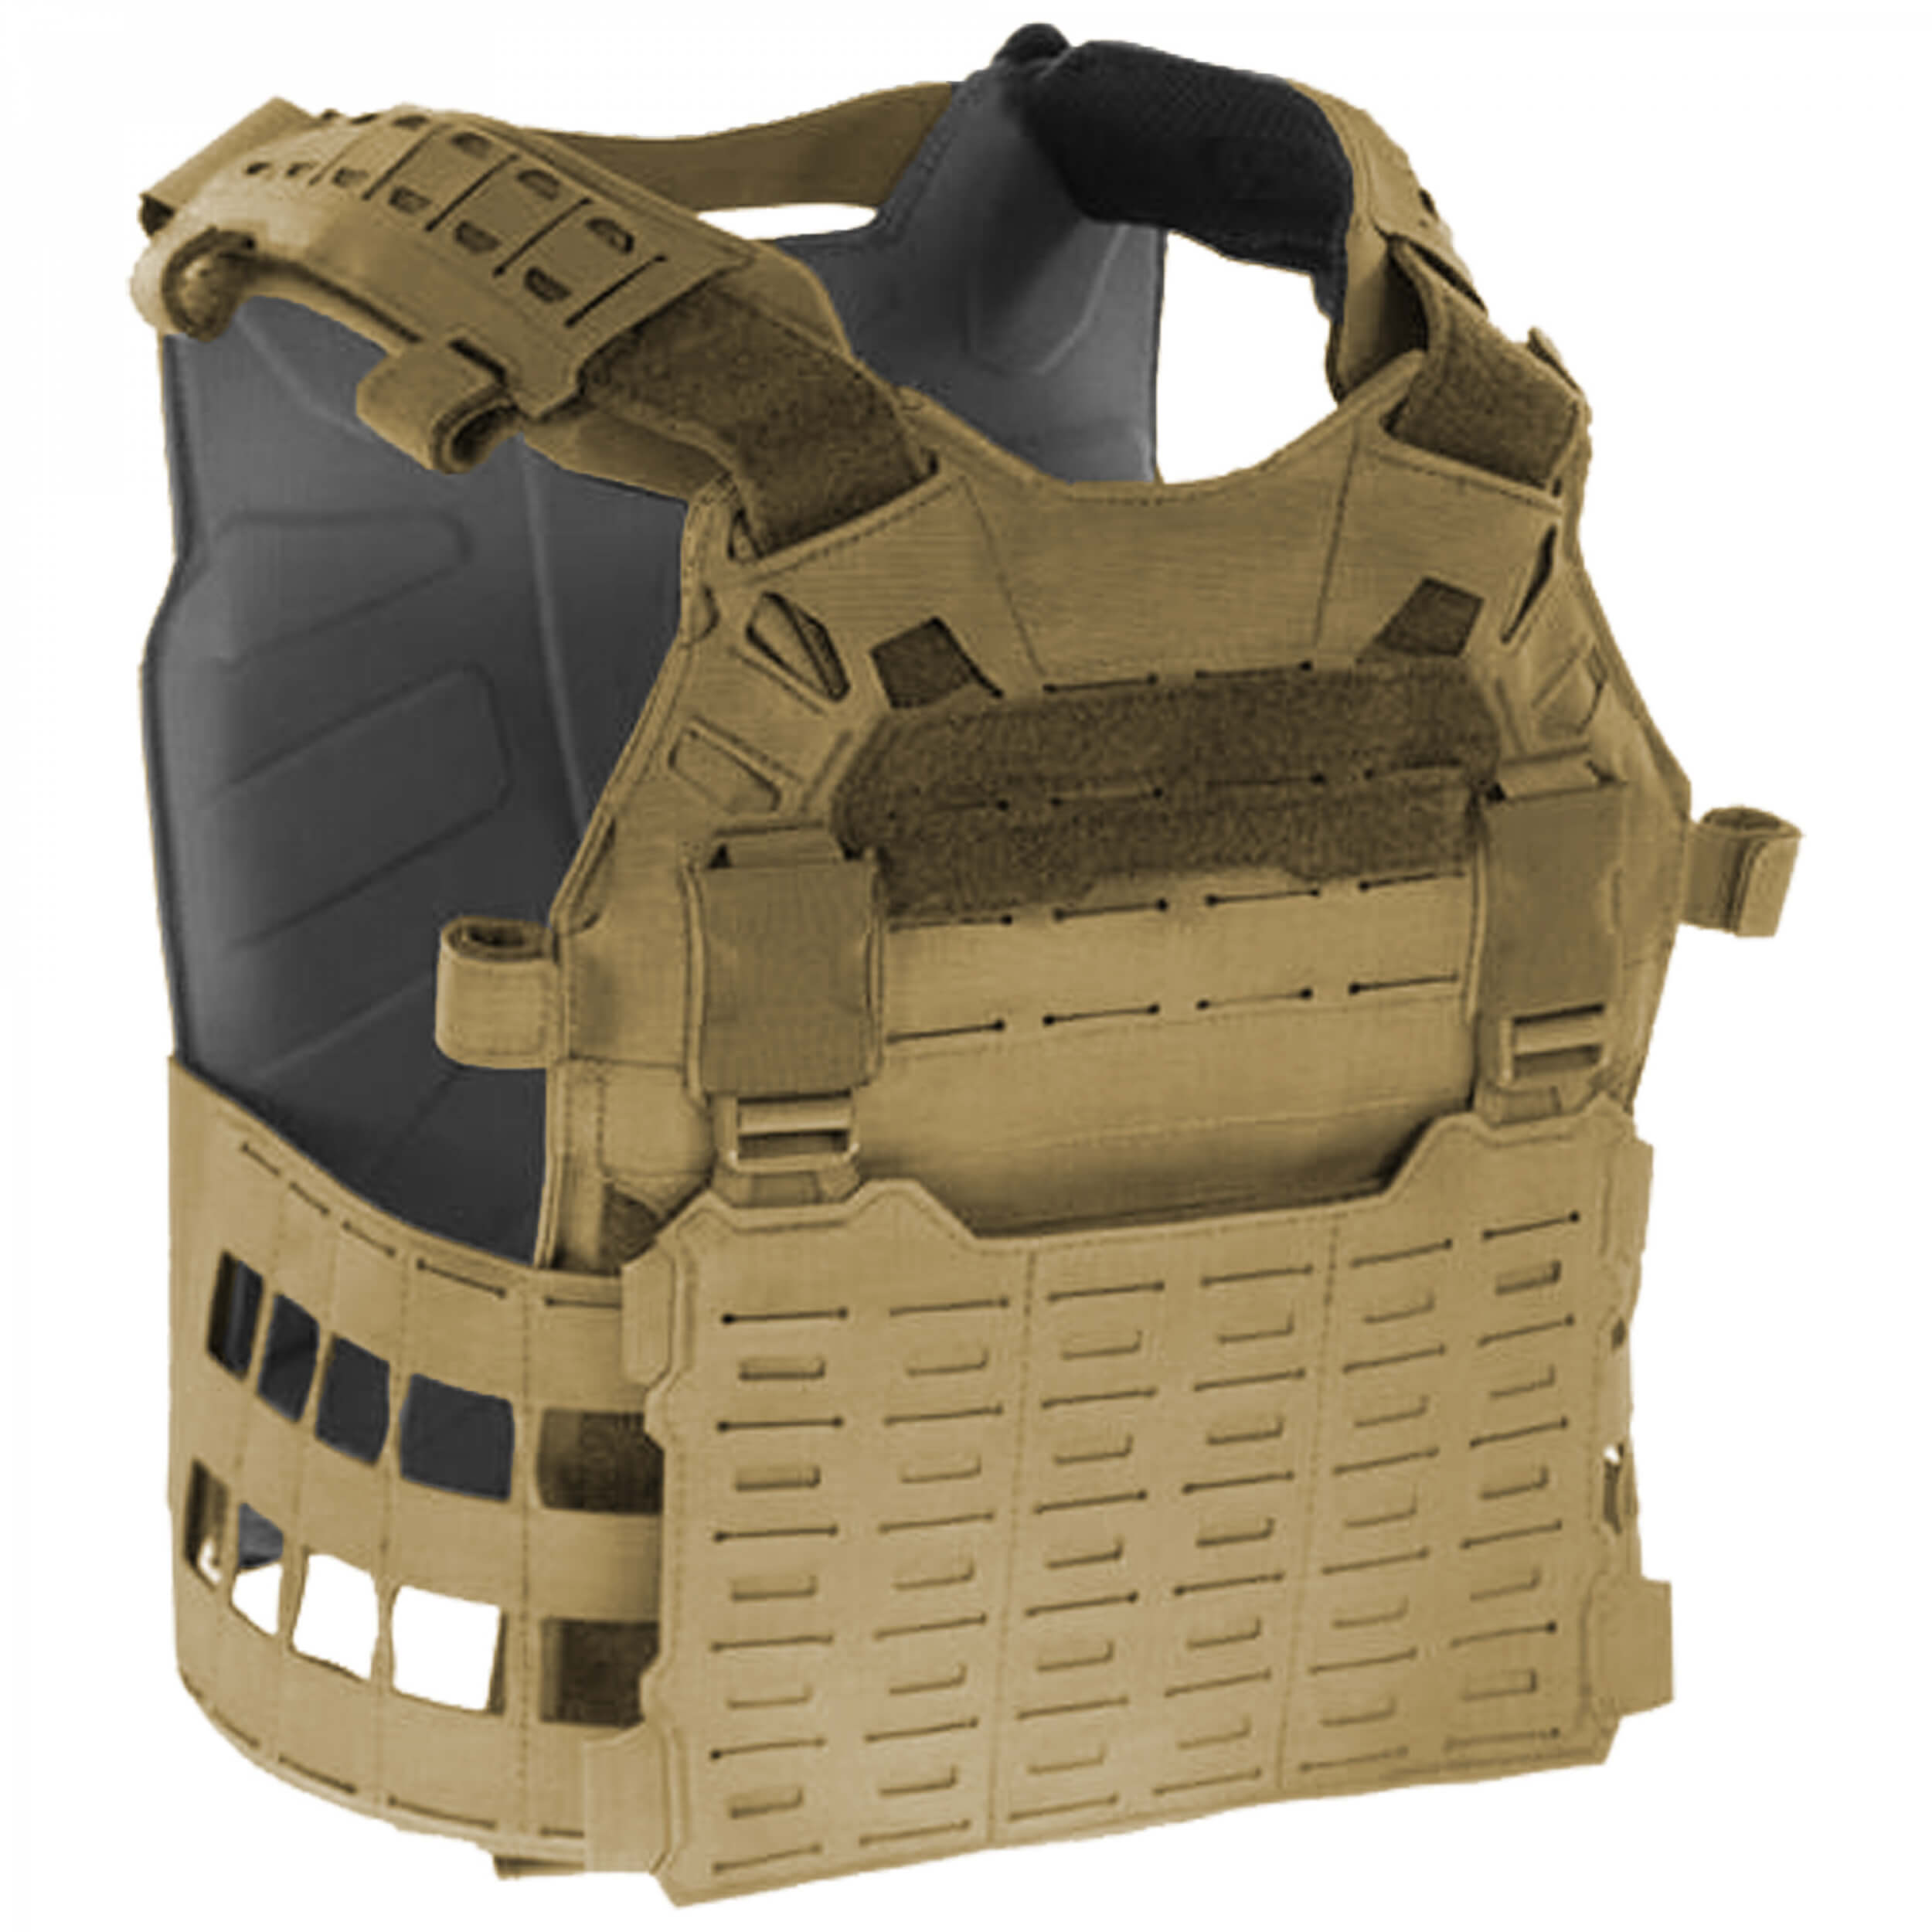 Templars Gear CPC-Plate Carrier ST SET coyote brown